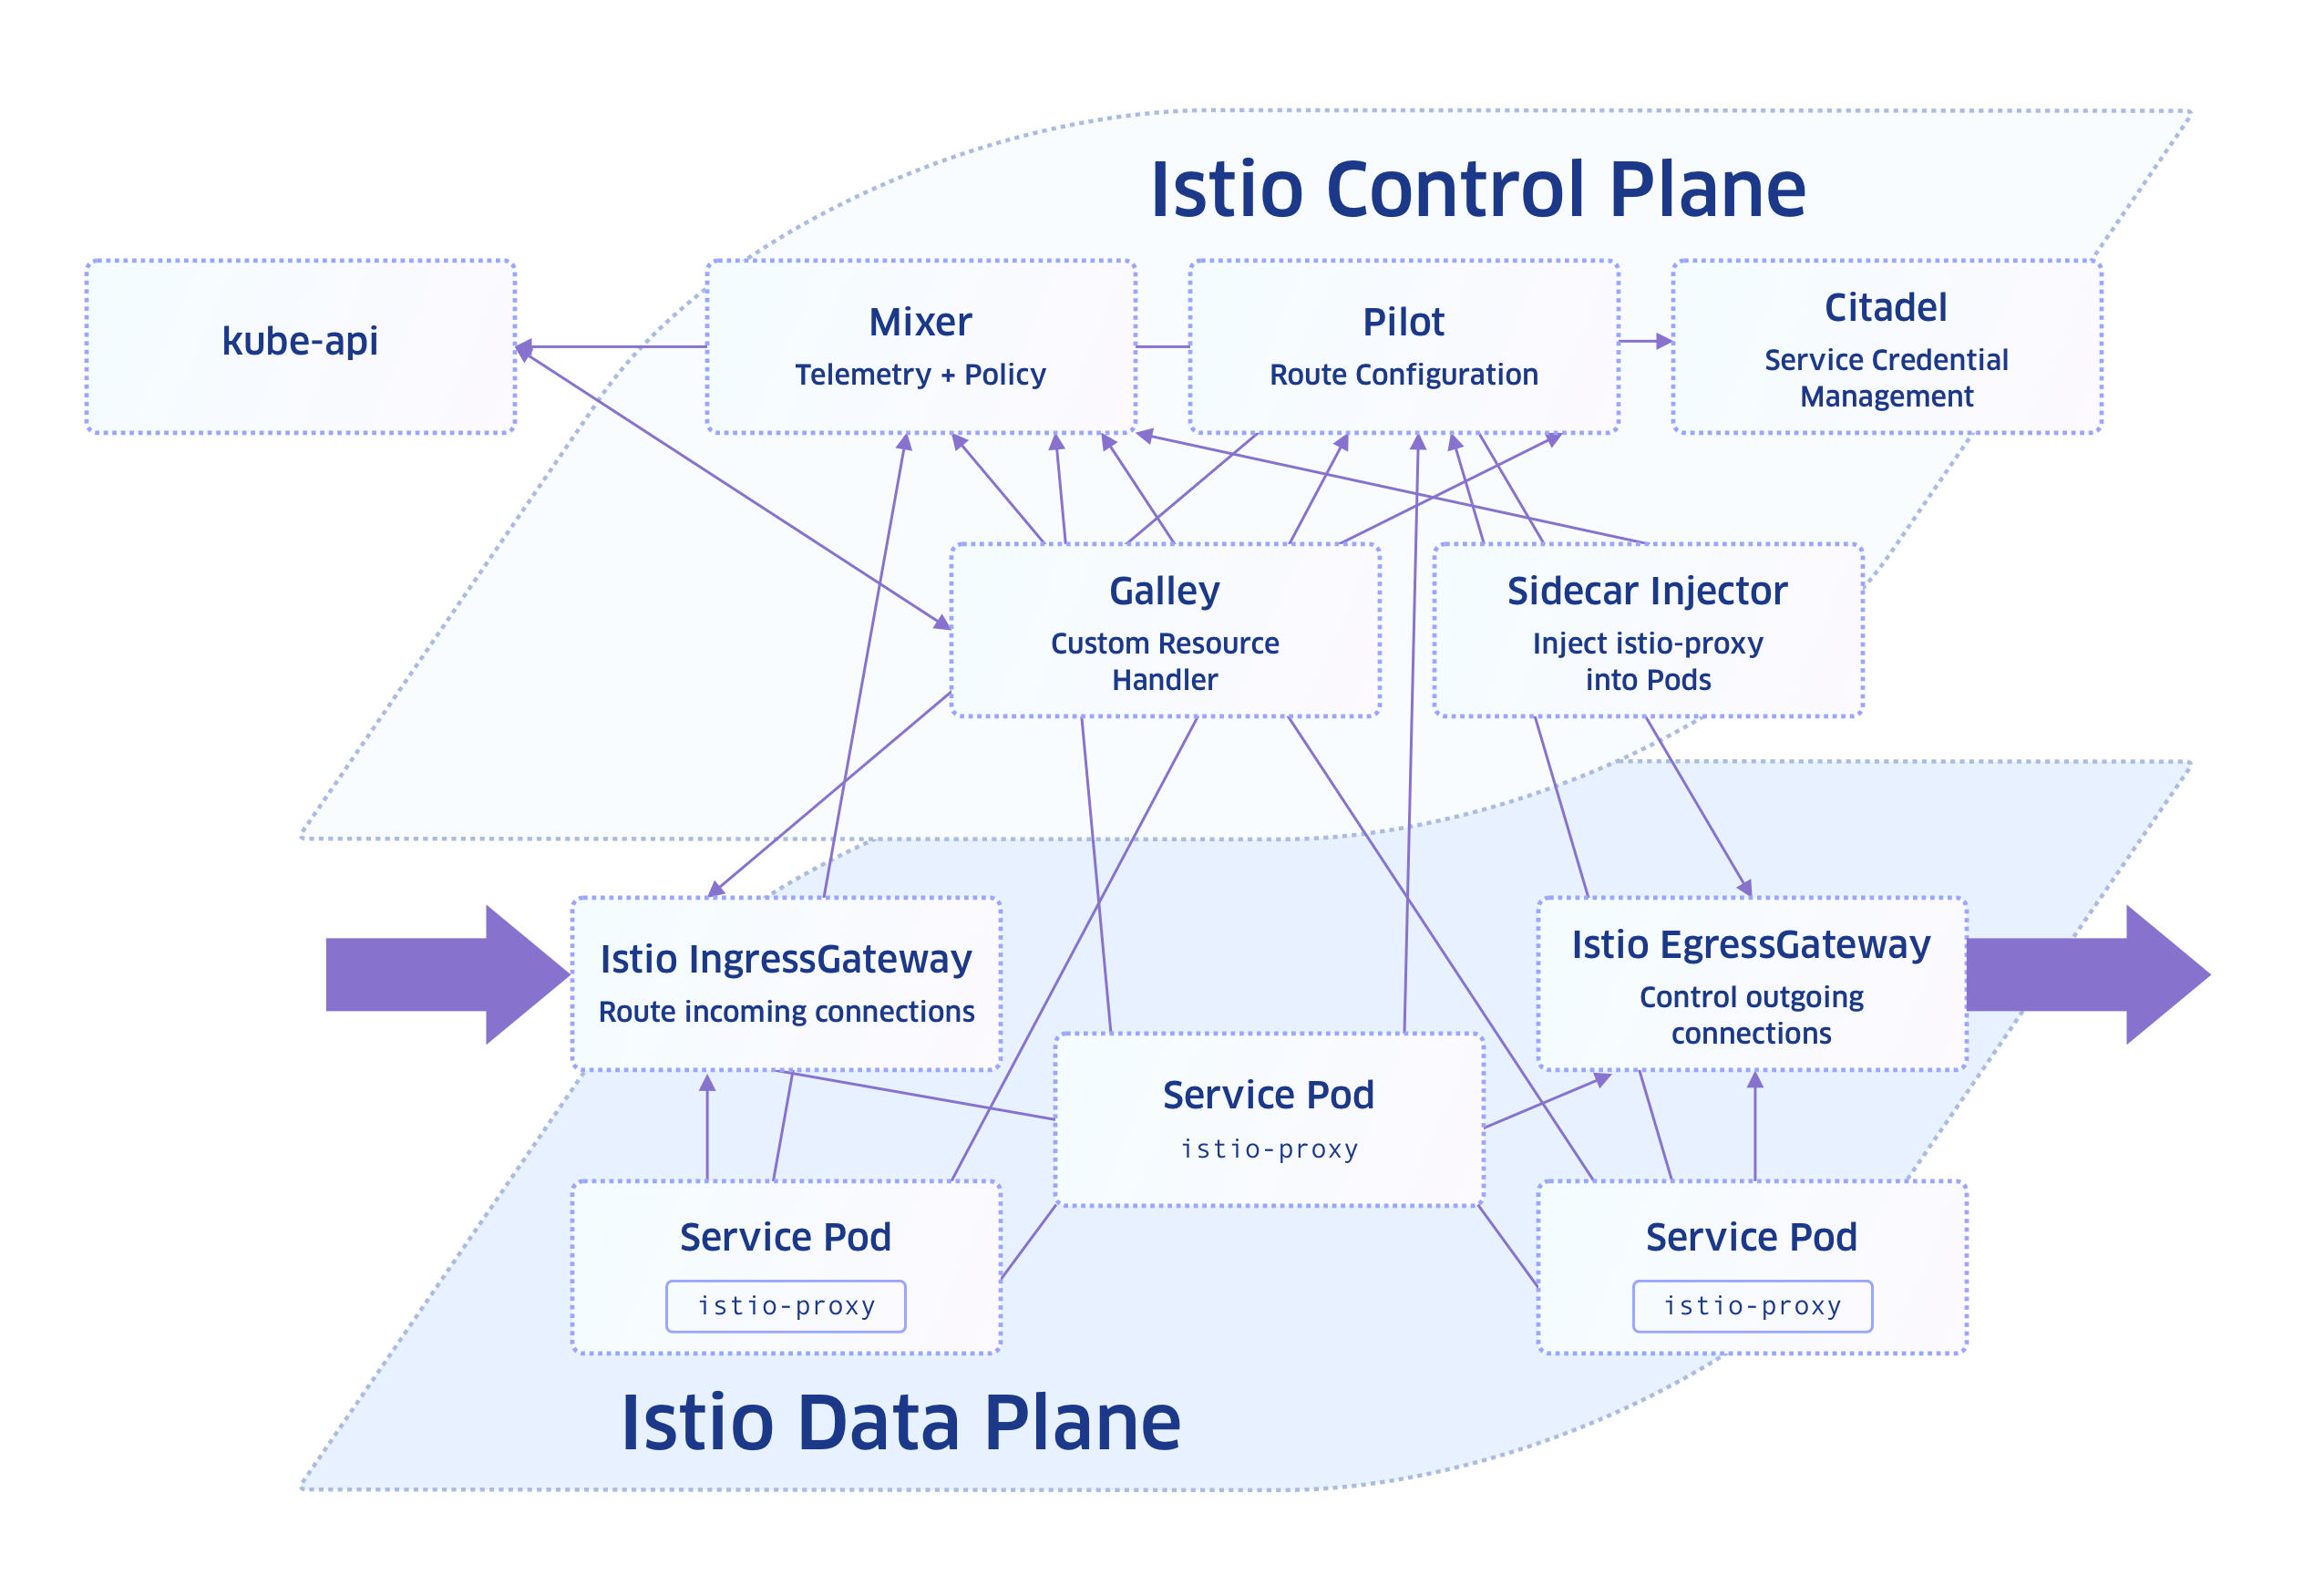 Getting started with Istio Service Mesh - What is it and